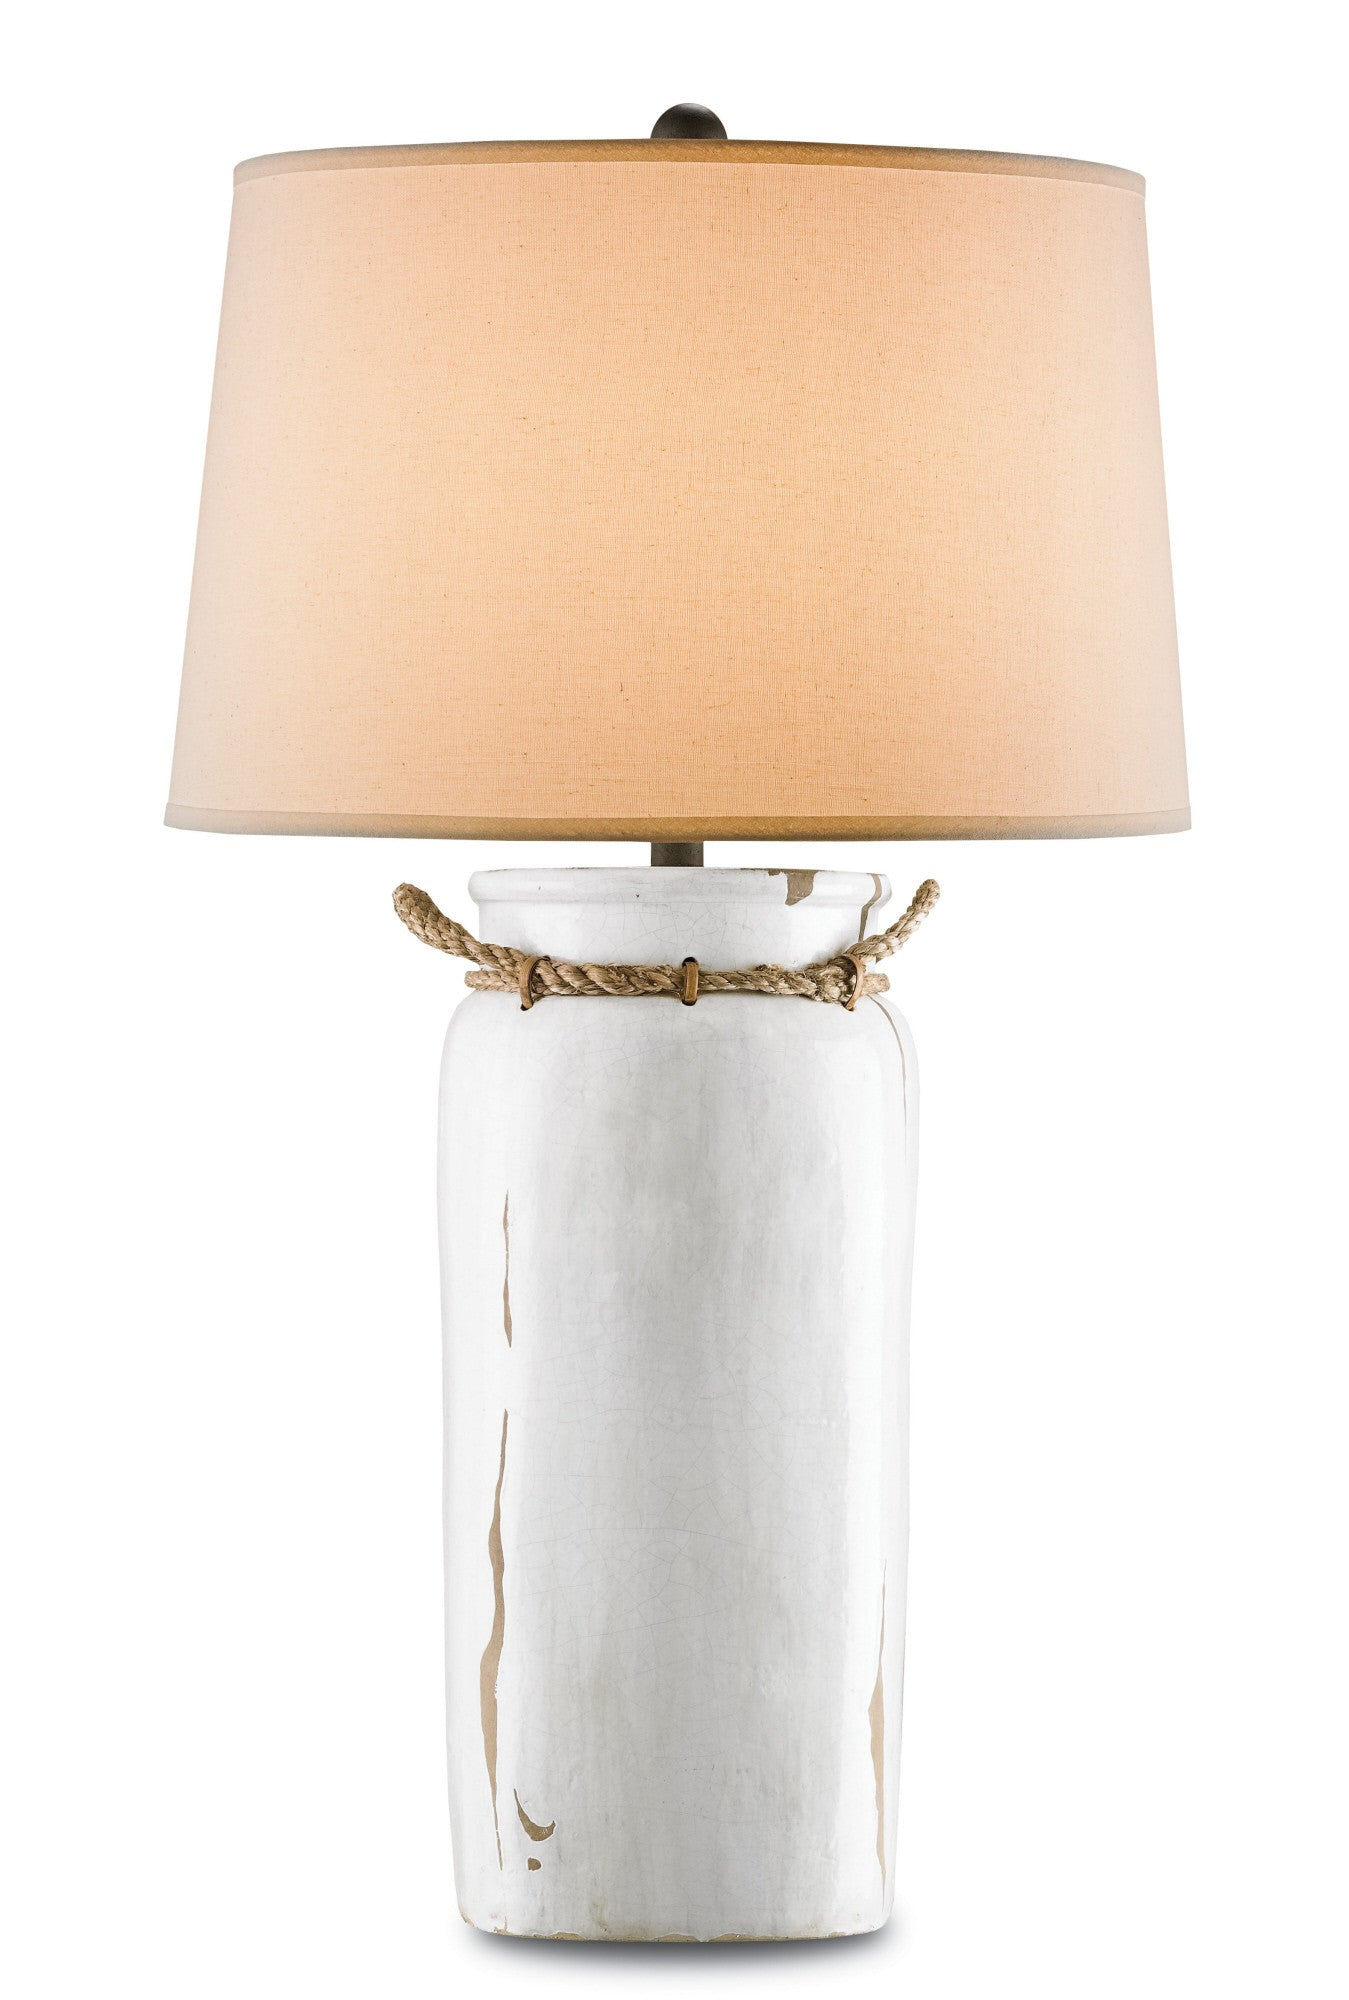 Sailaway Table Lamp design by Currey & Company